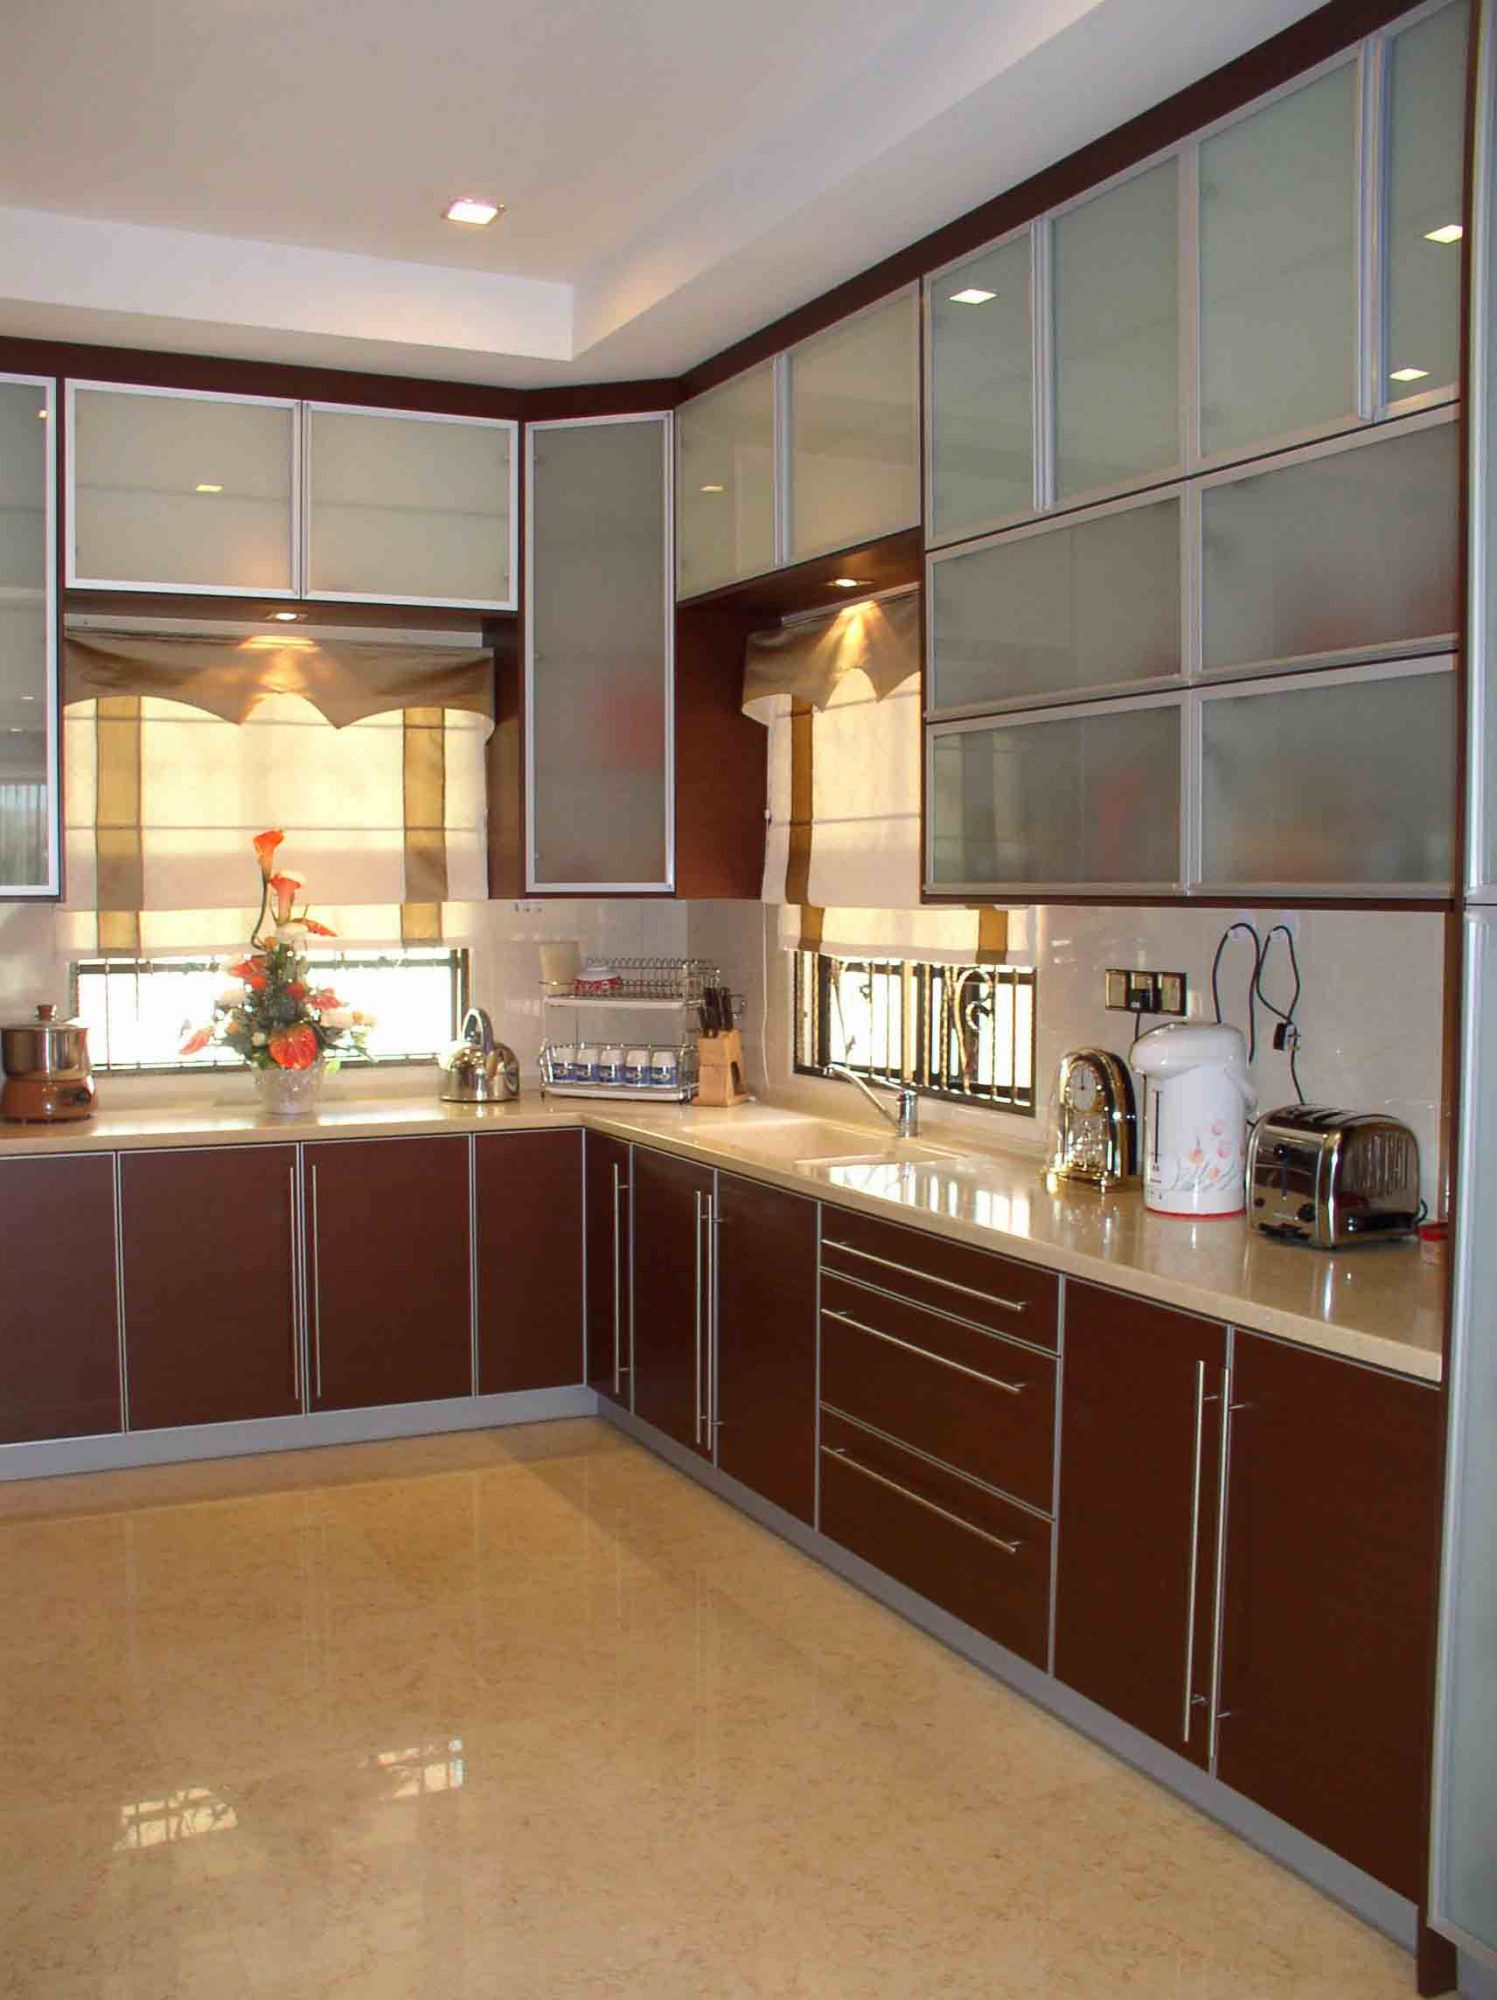 kitchen cabinet designs free 20 popular kitchen cabinet designs in malaysia recommend 297